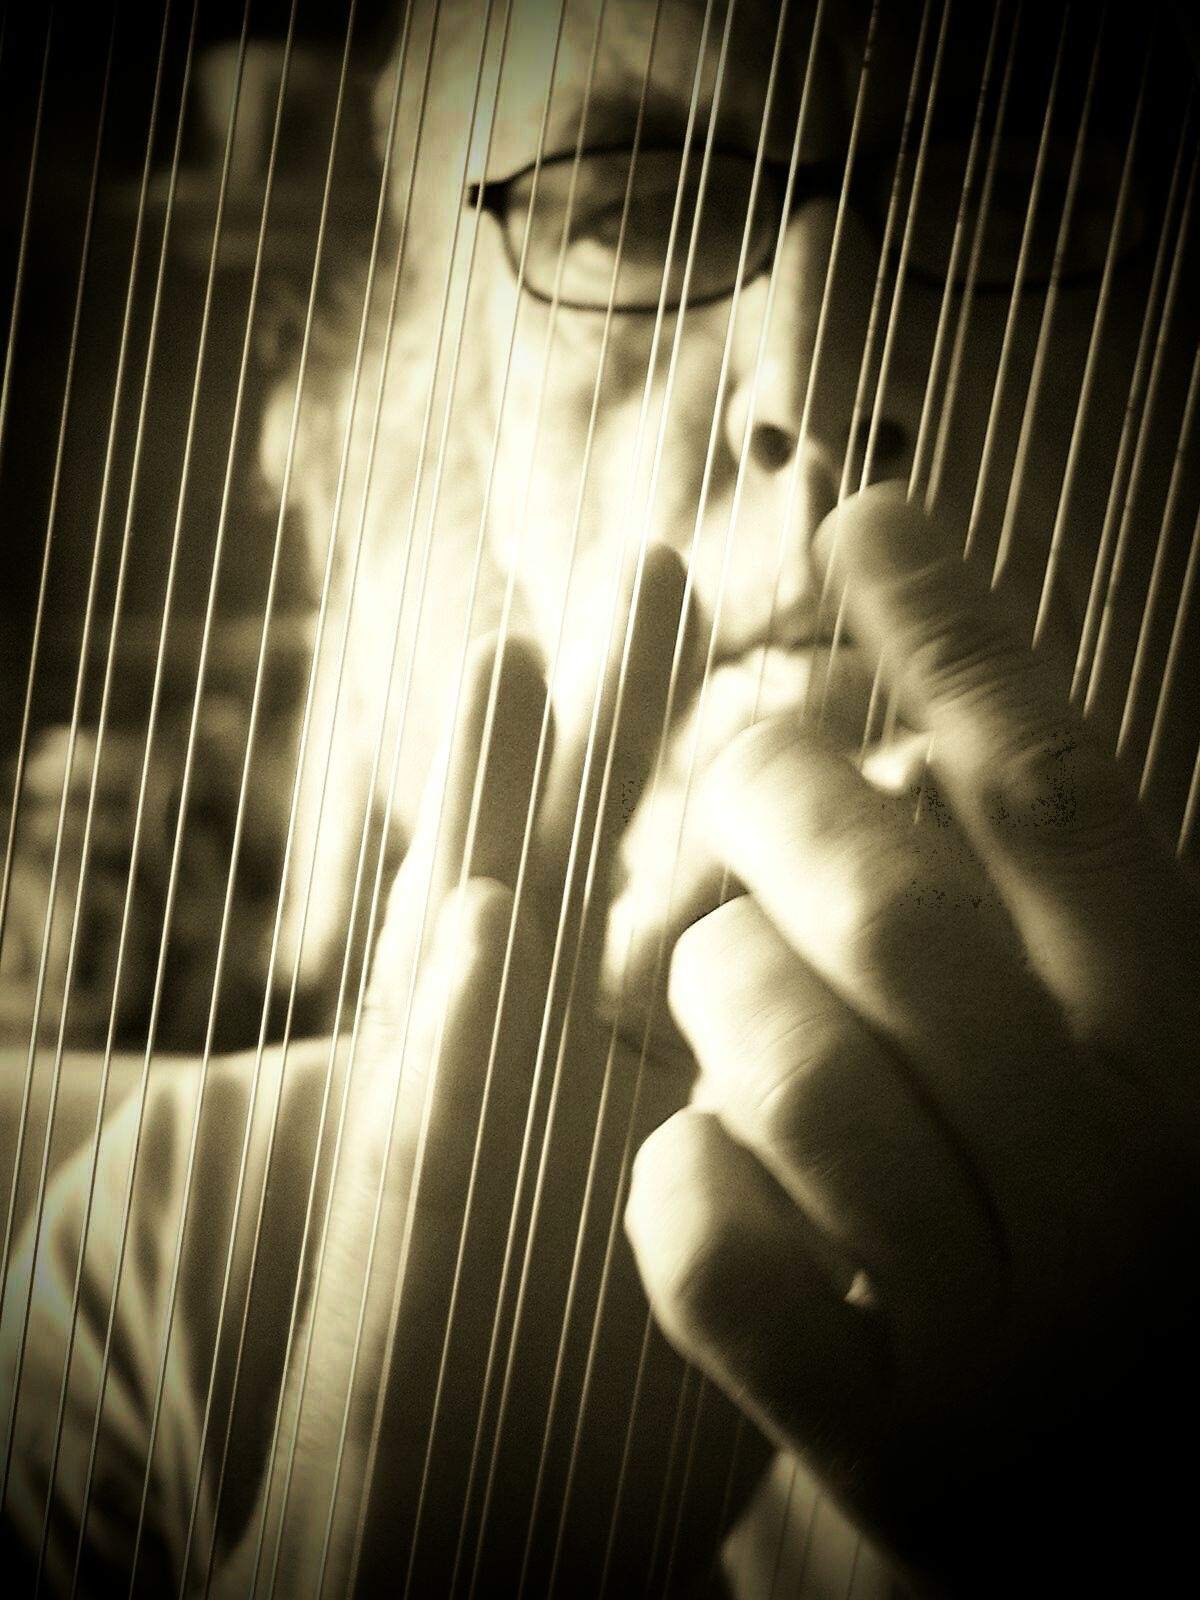 John through the strings of his lyre